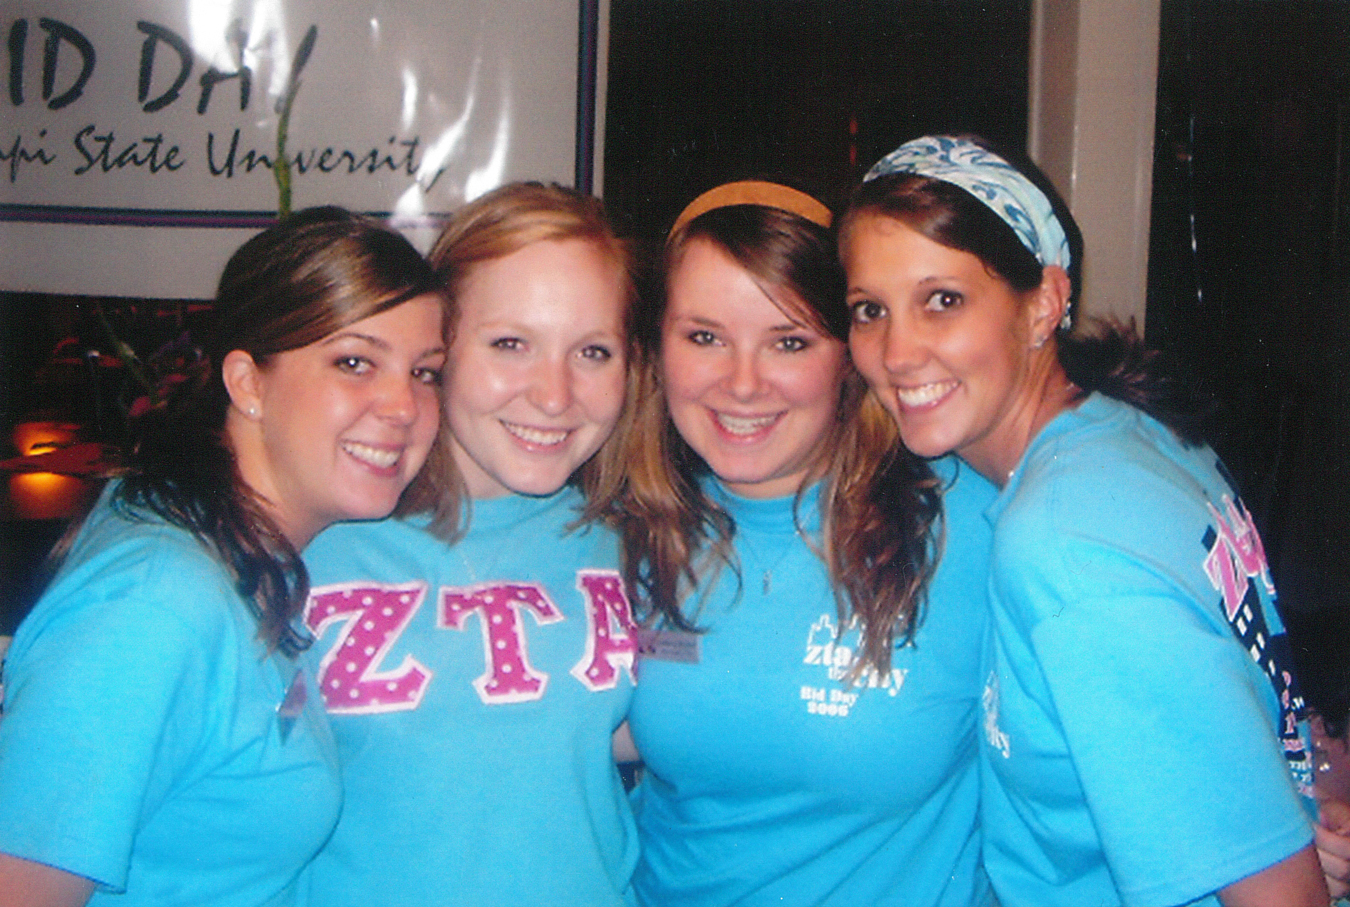 08-zeta-tau-alpha-mississippi-state-senior-year-bid-day-lindsey-archer